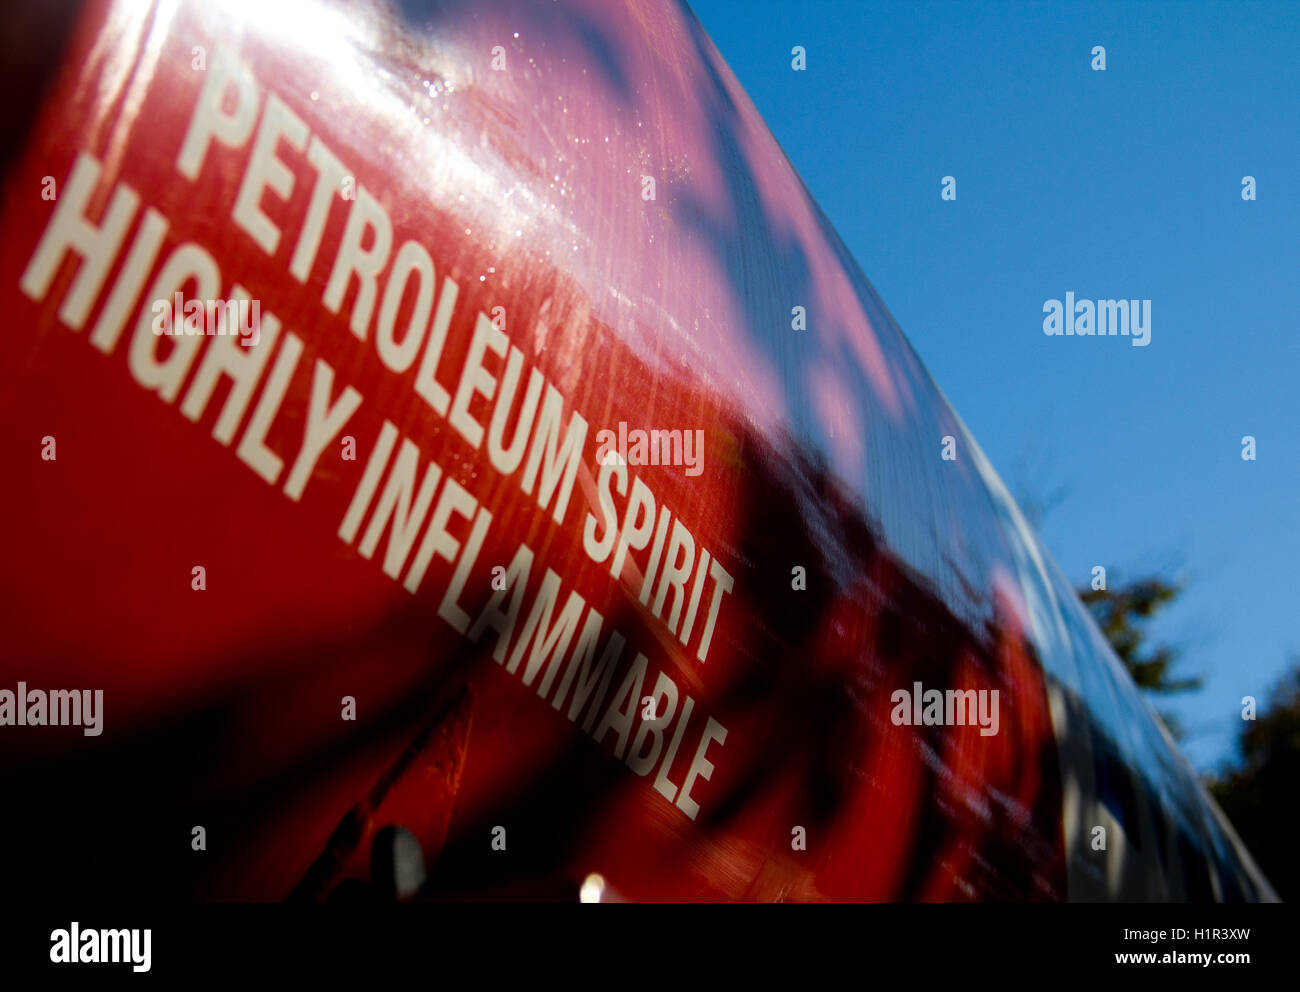 Petroleum spirit highly inflammable sign - Stock Image